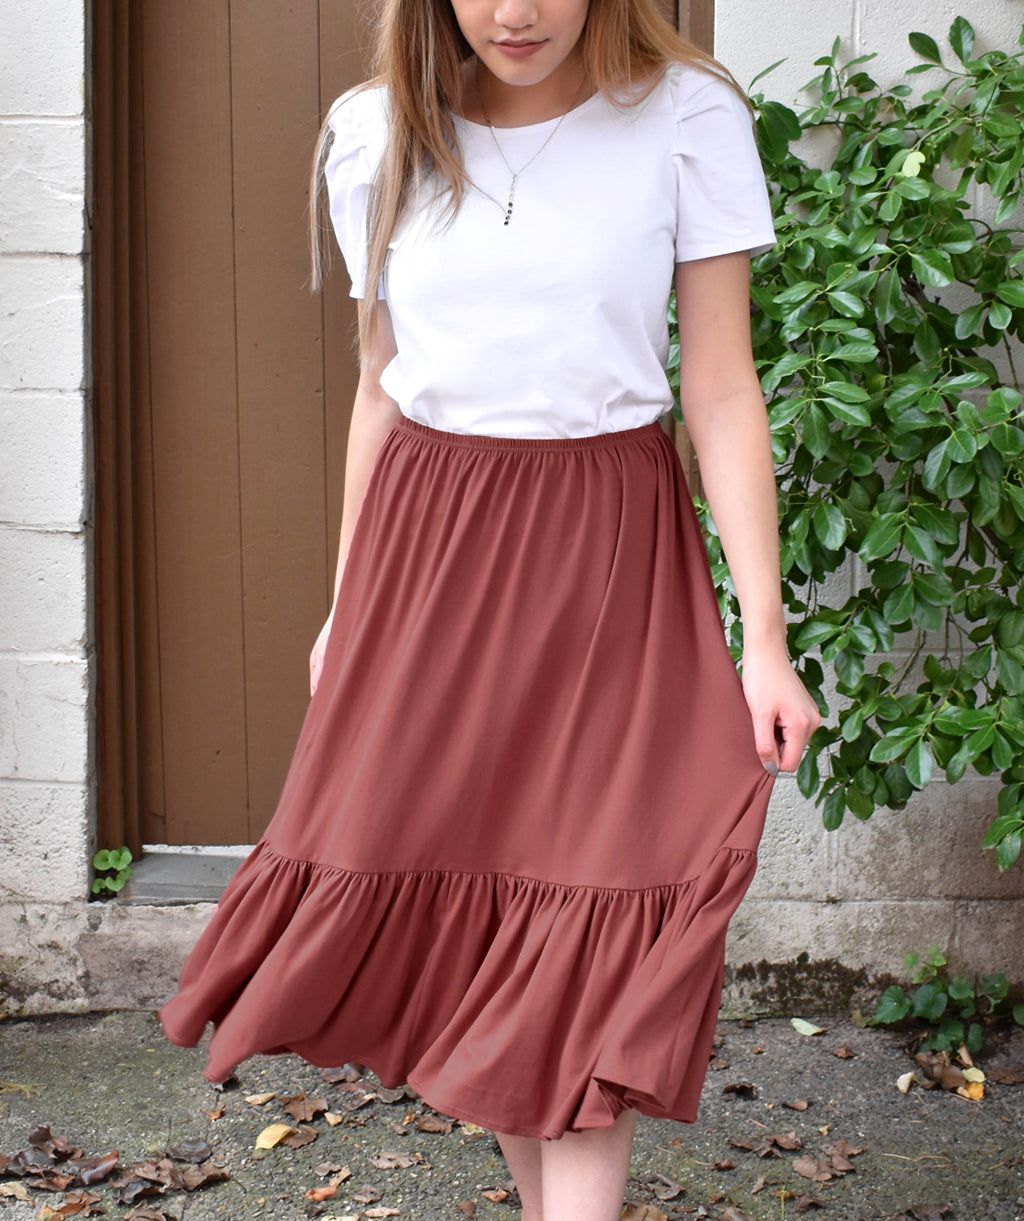 MURRAY tiered skirt in Dusty Mauve